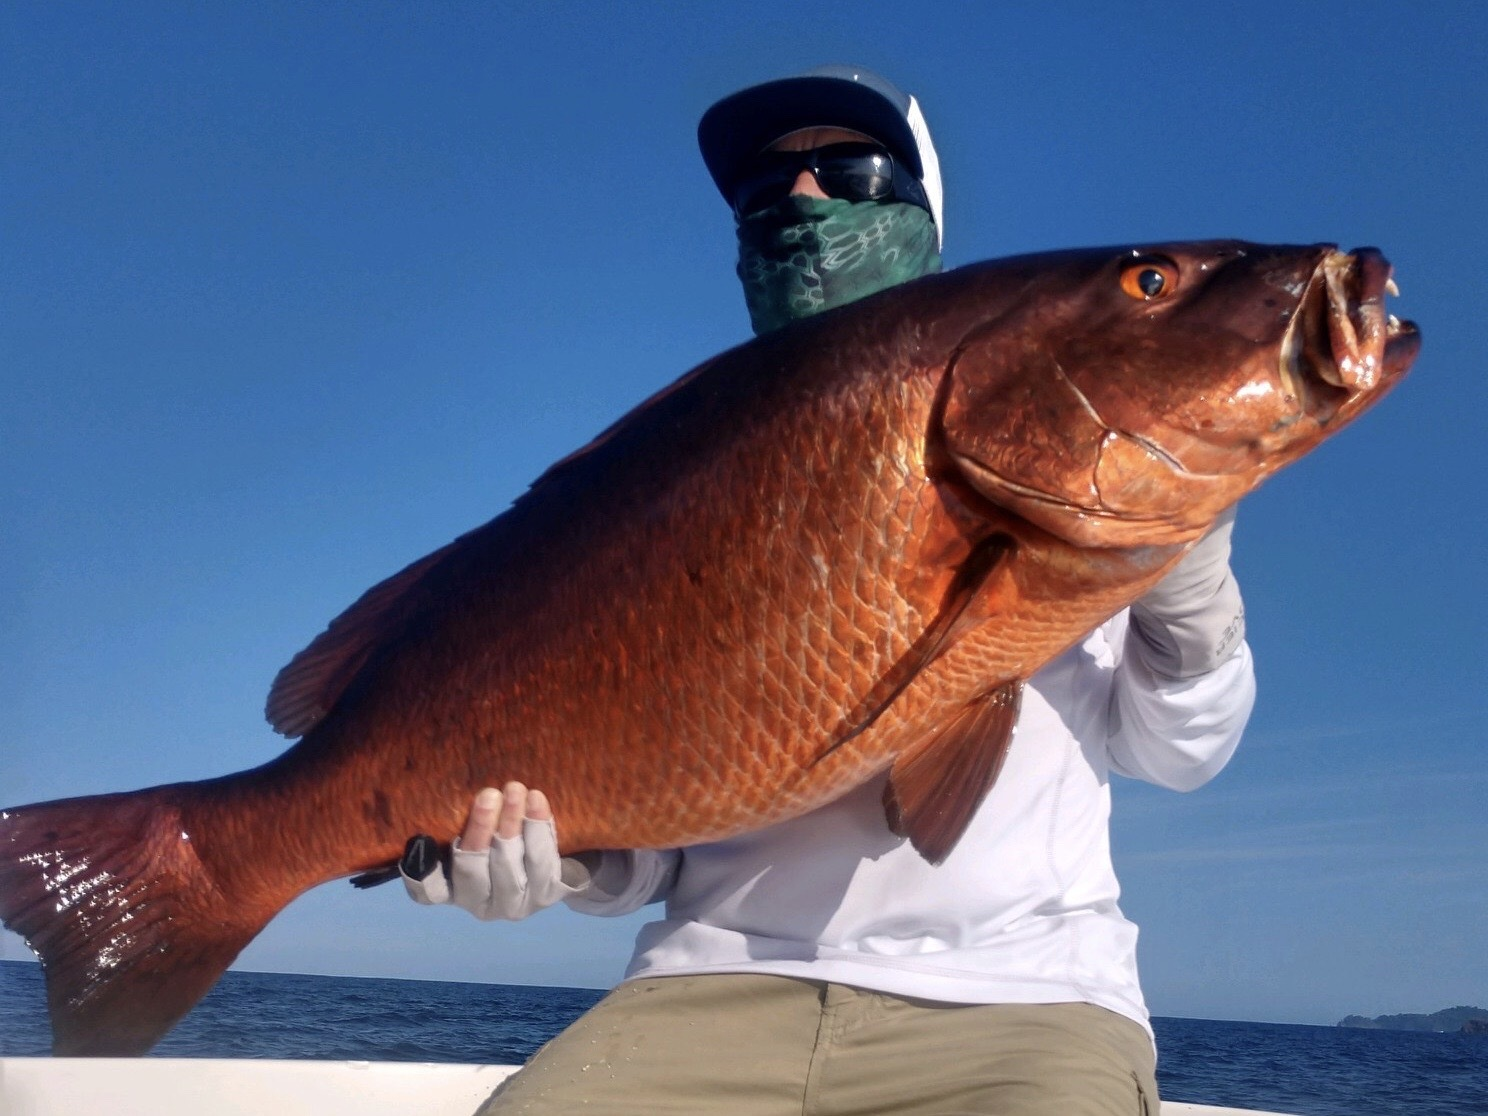 Dean Foster decked this big cubera snapper while fishing in Panama last week.